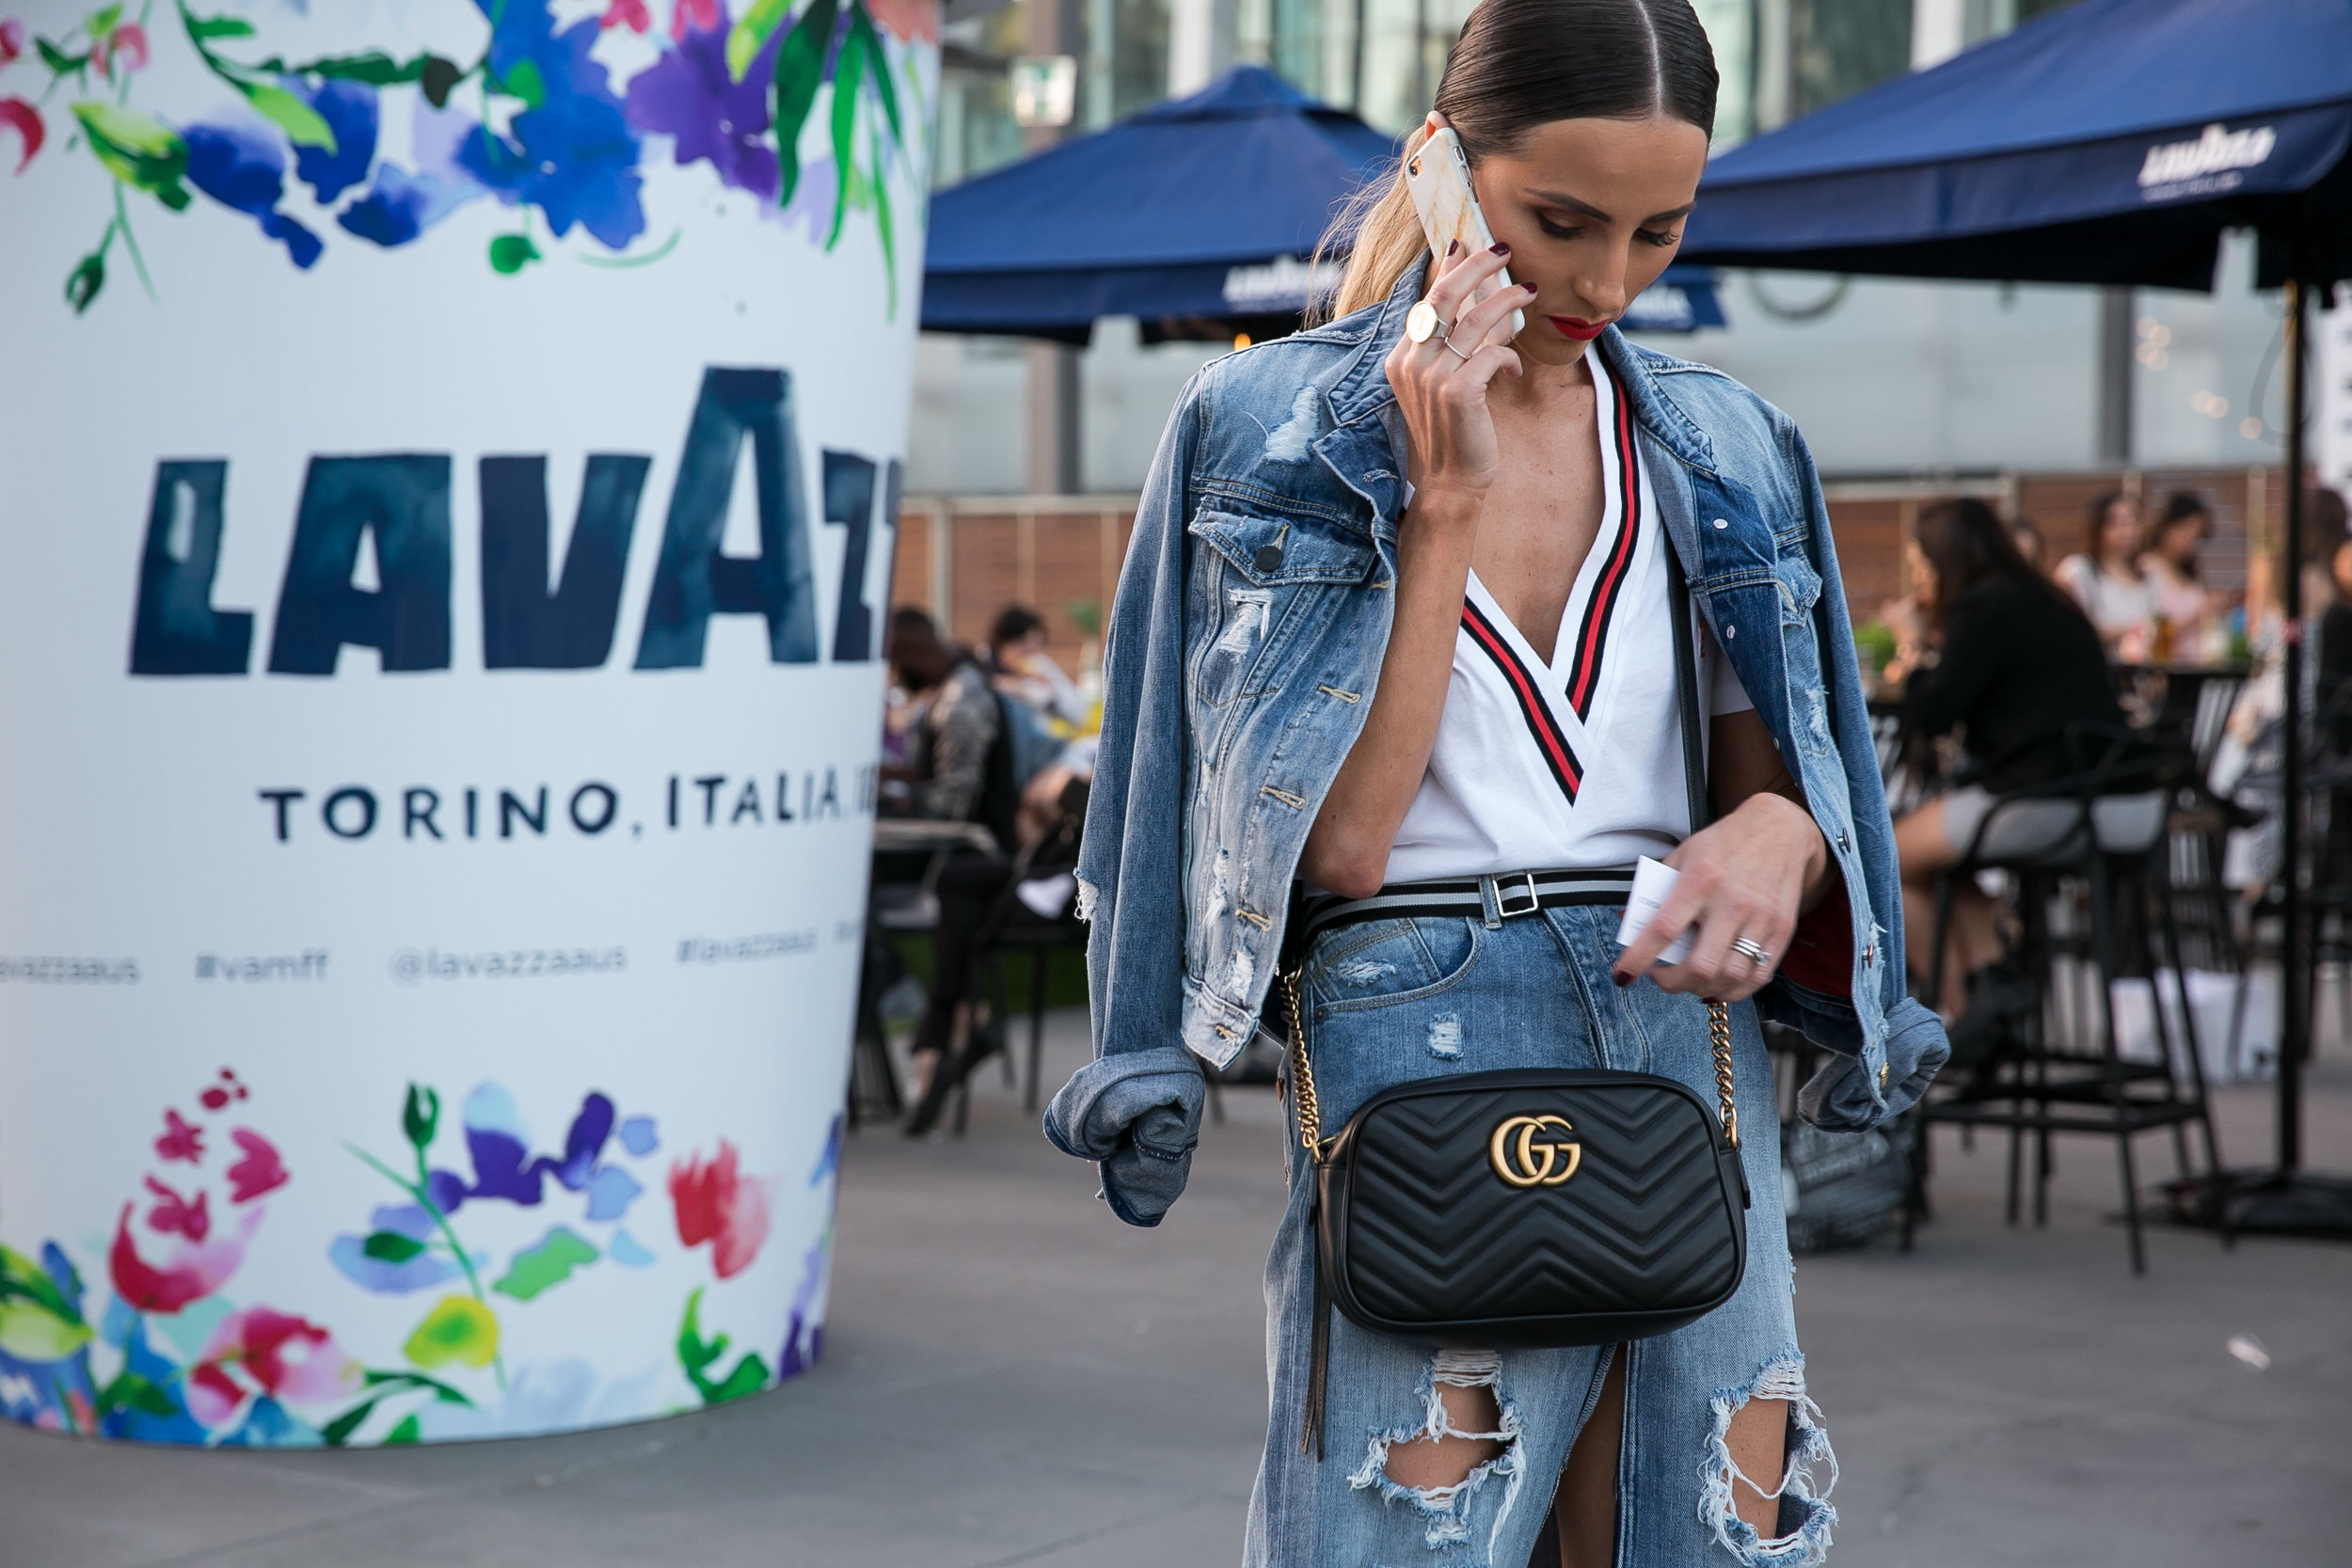 lavazza-vamff-2017-day-3-guests-2.JPG